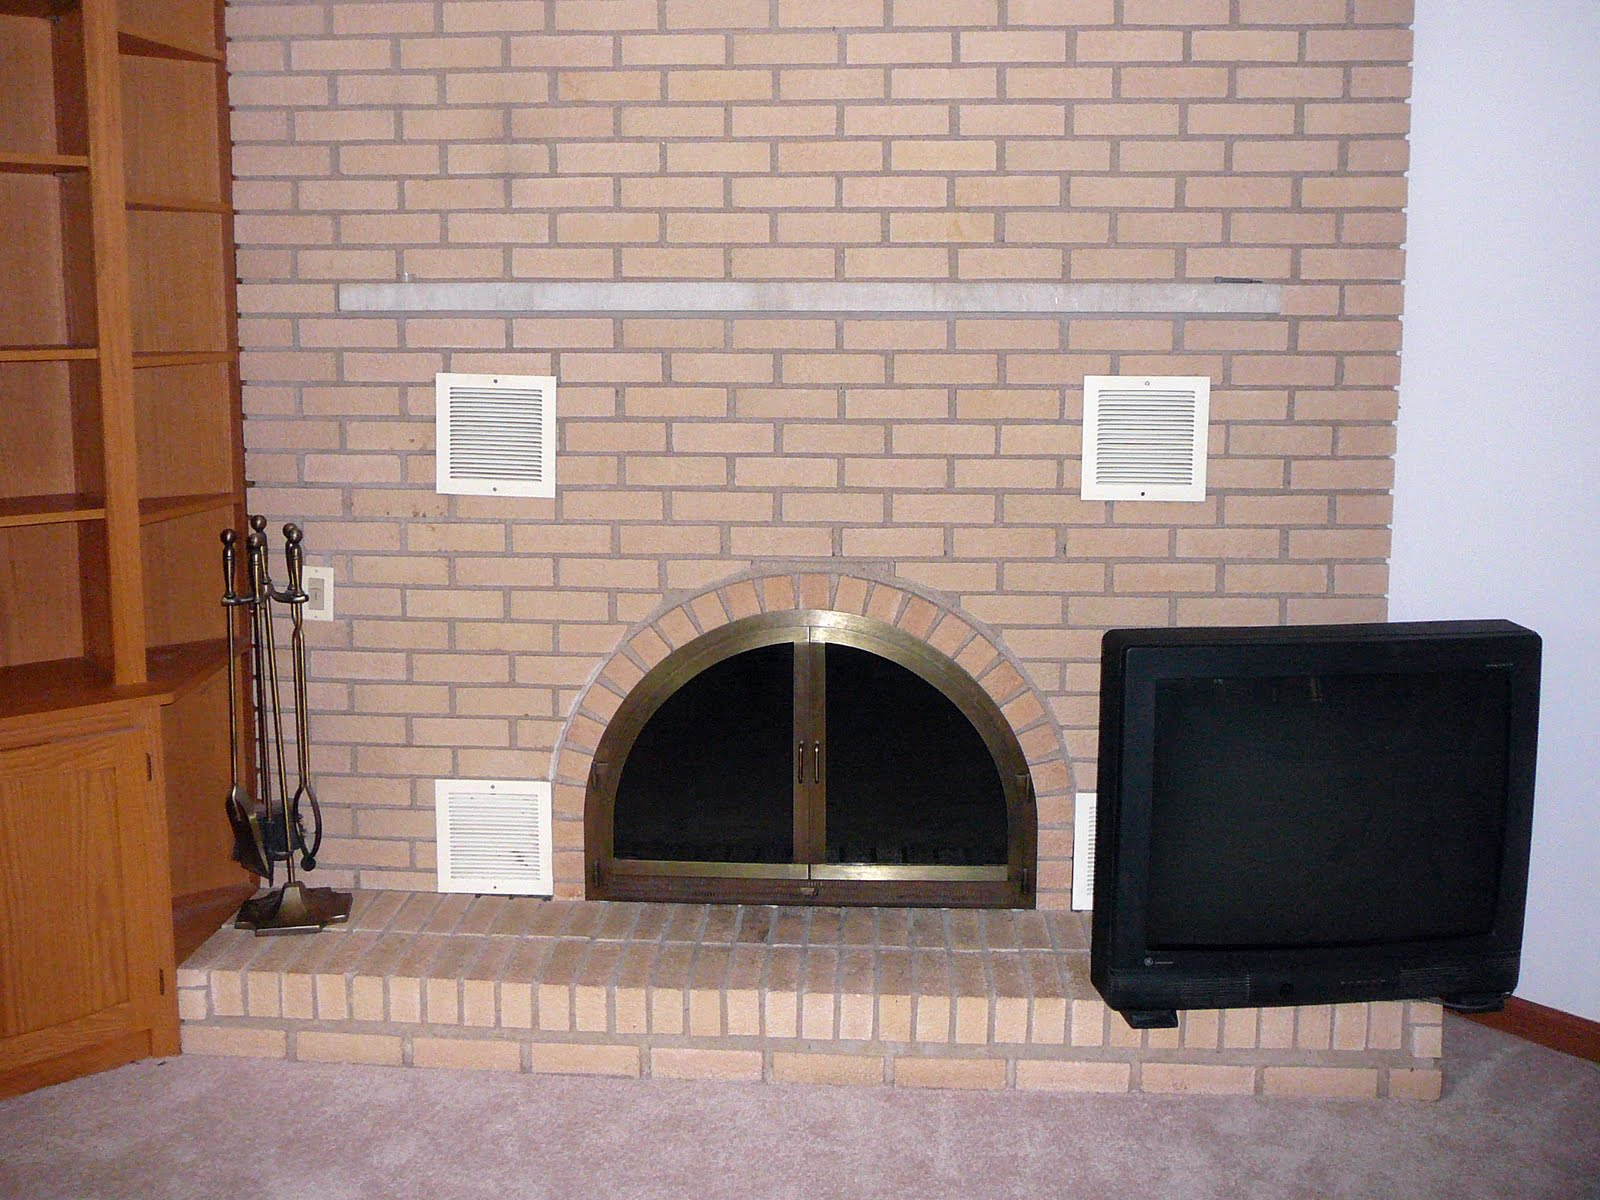 The Pursuit of Happiness: Amazing Fireplace Transformation